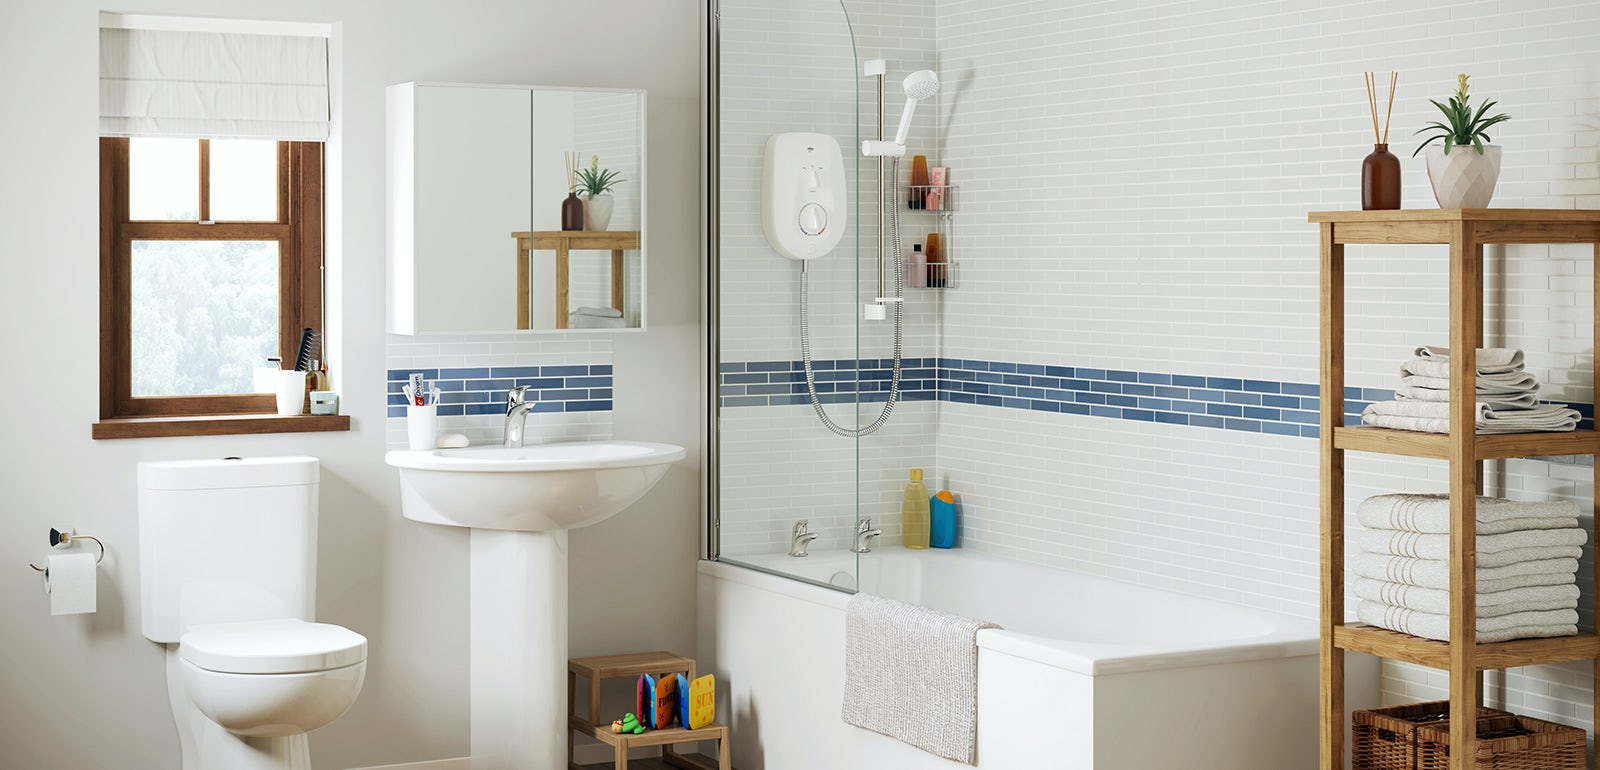 5 time-saving spring cleaning tips from Mira Showers